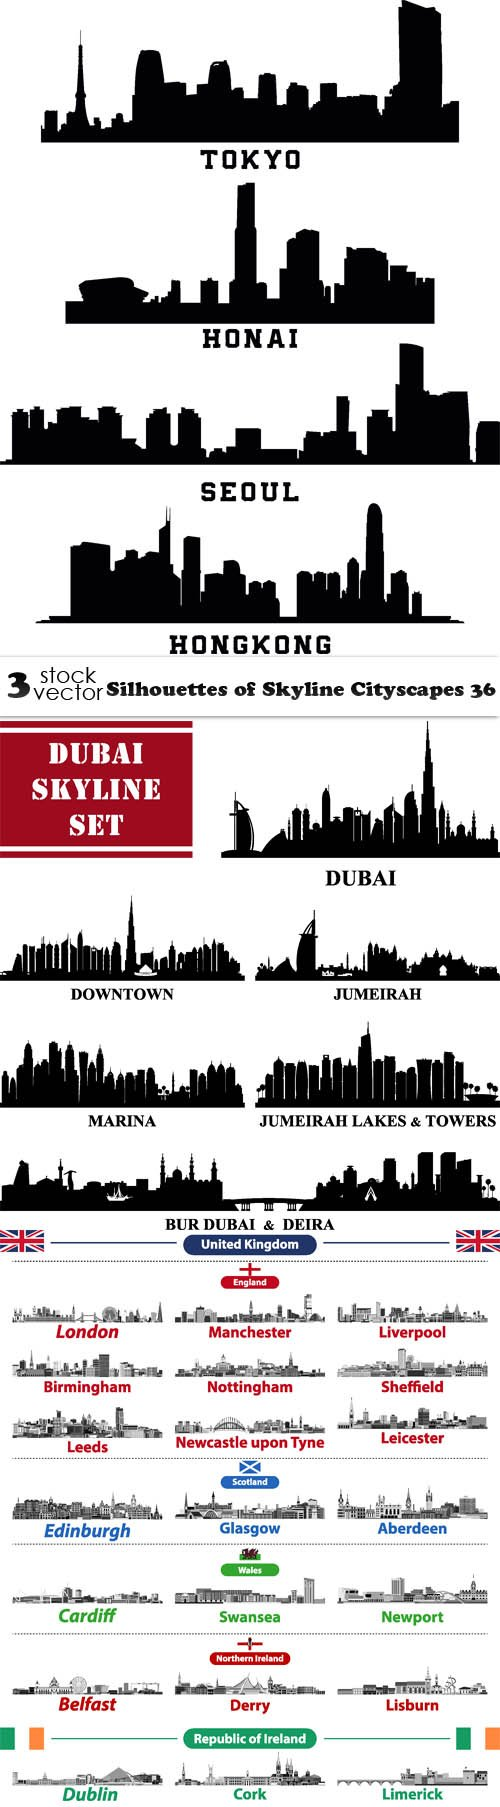 Vectors - Silhouettes of Skyline Cityscapes 36